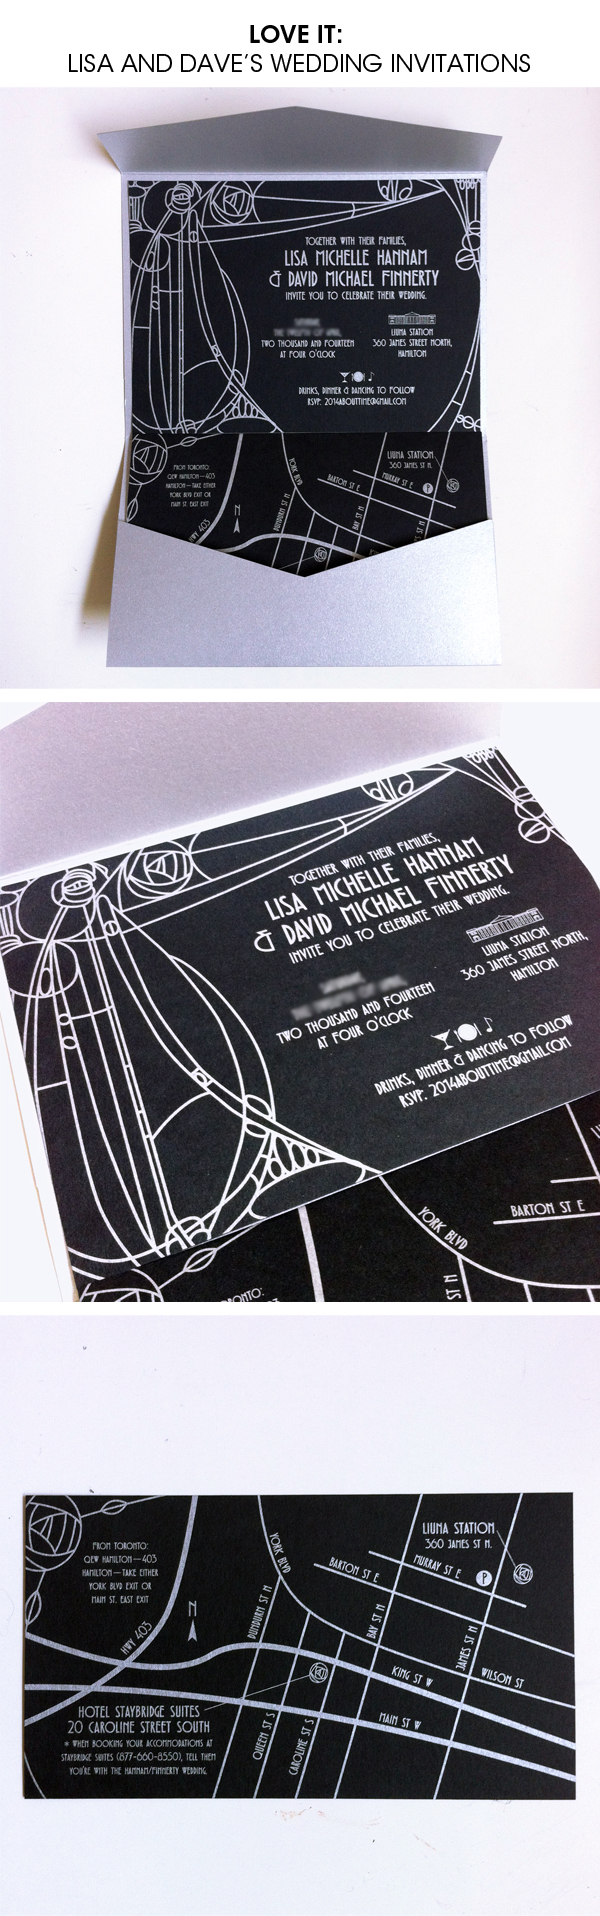 lisa dave wedding invitations